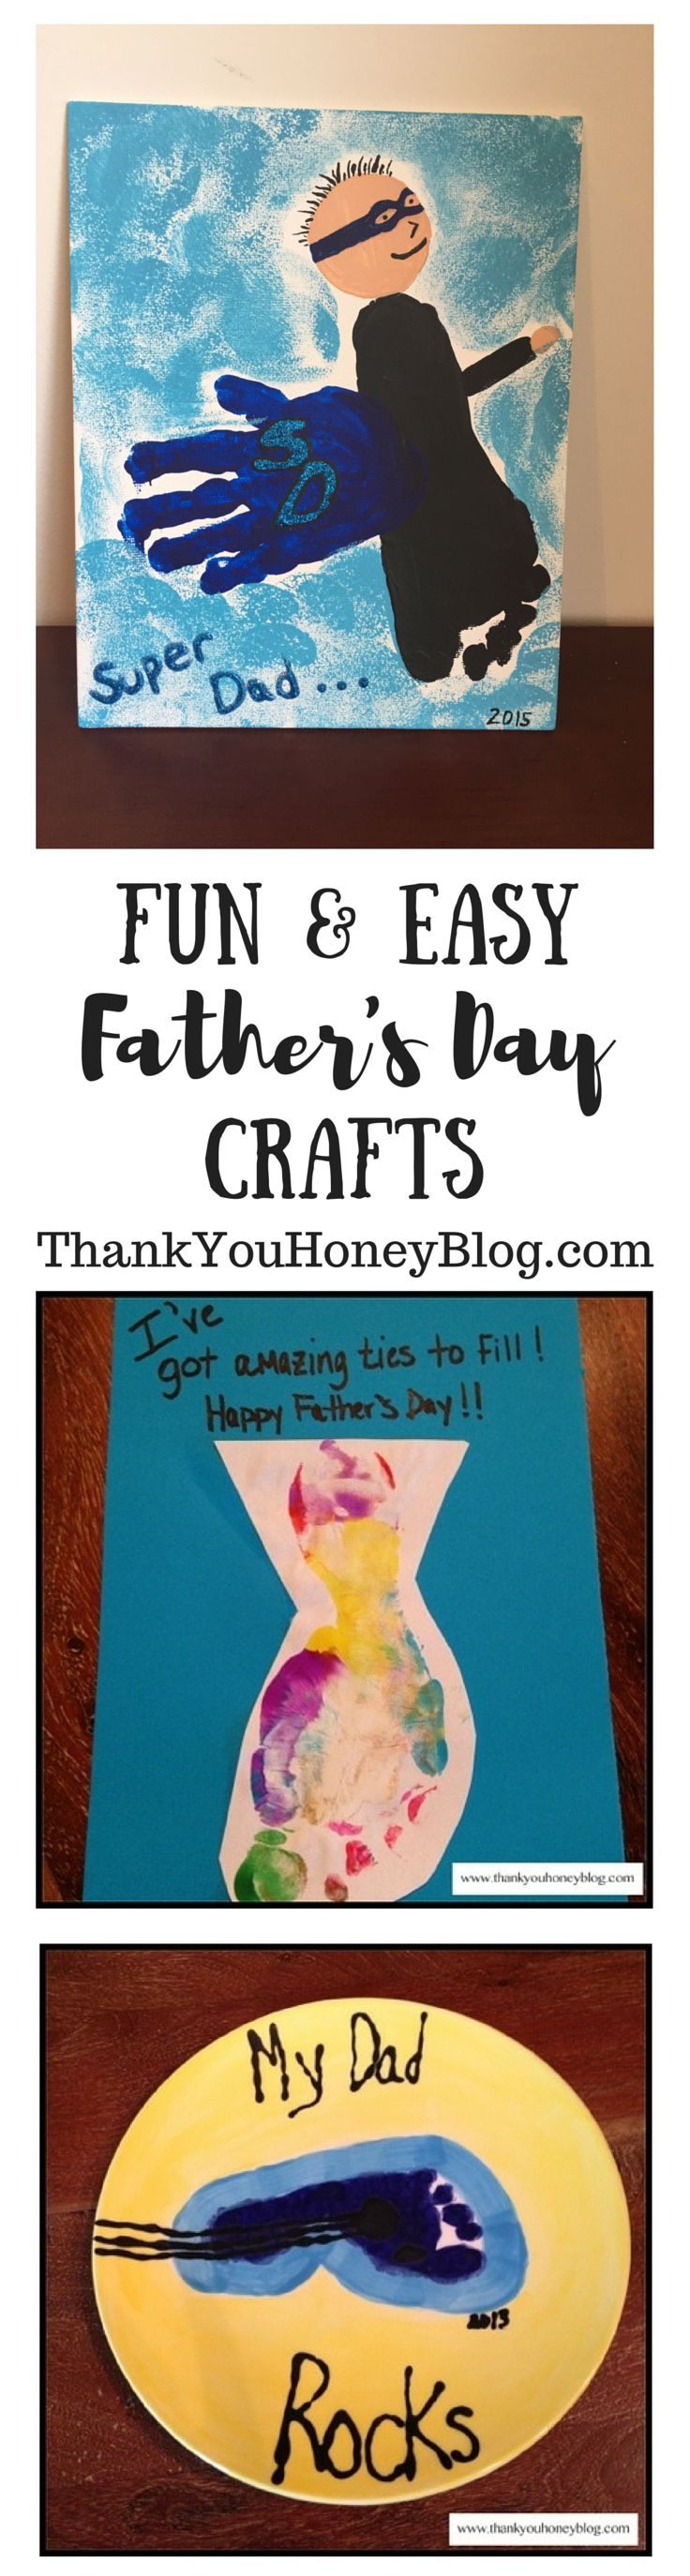 Fun & Easy Father's Day Crafts, Father's Day Gift Ideas, Crafts, DIY, Gifts from Kids, Homemade, Cards, Handmade, Made with Love, Father's Day, Dad, How To, Hacks, http://thankyouhoneyblog.com